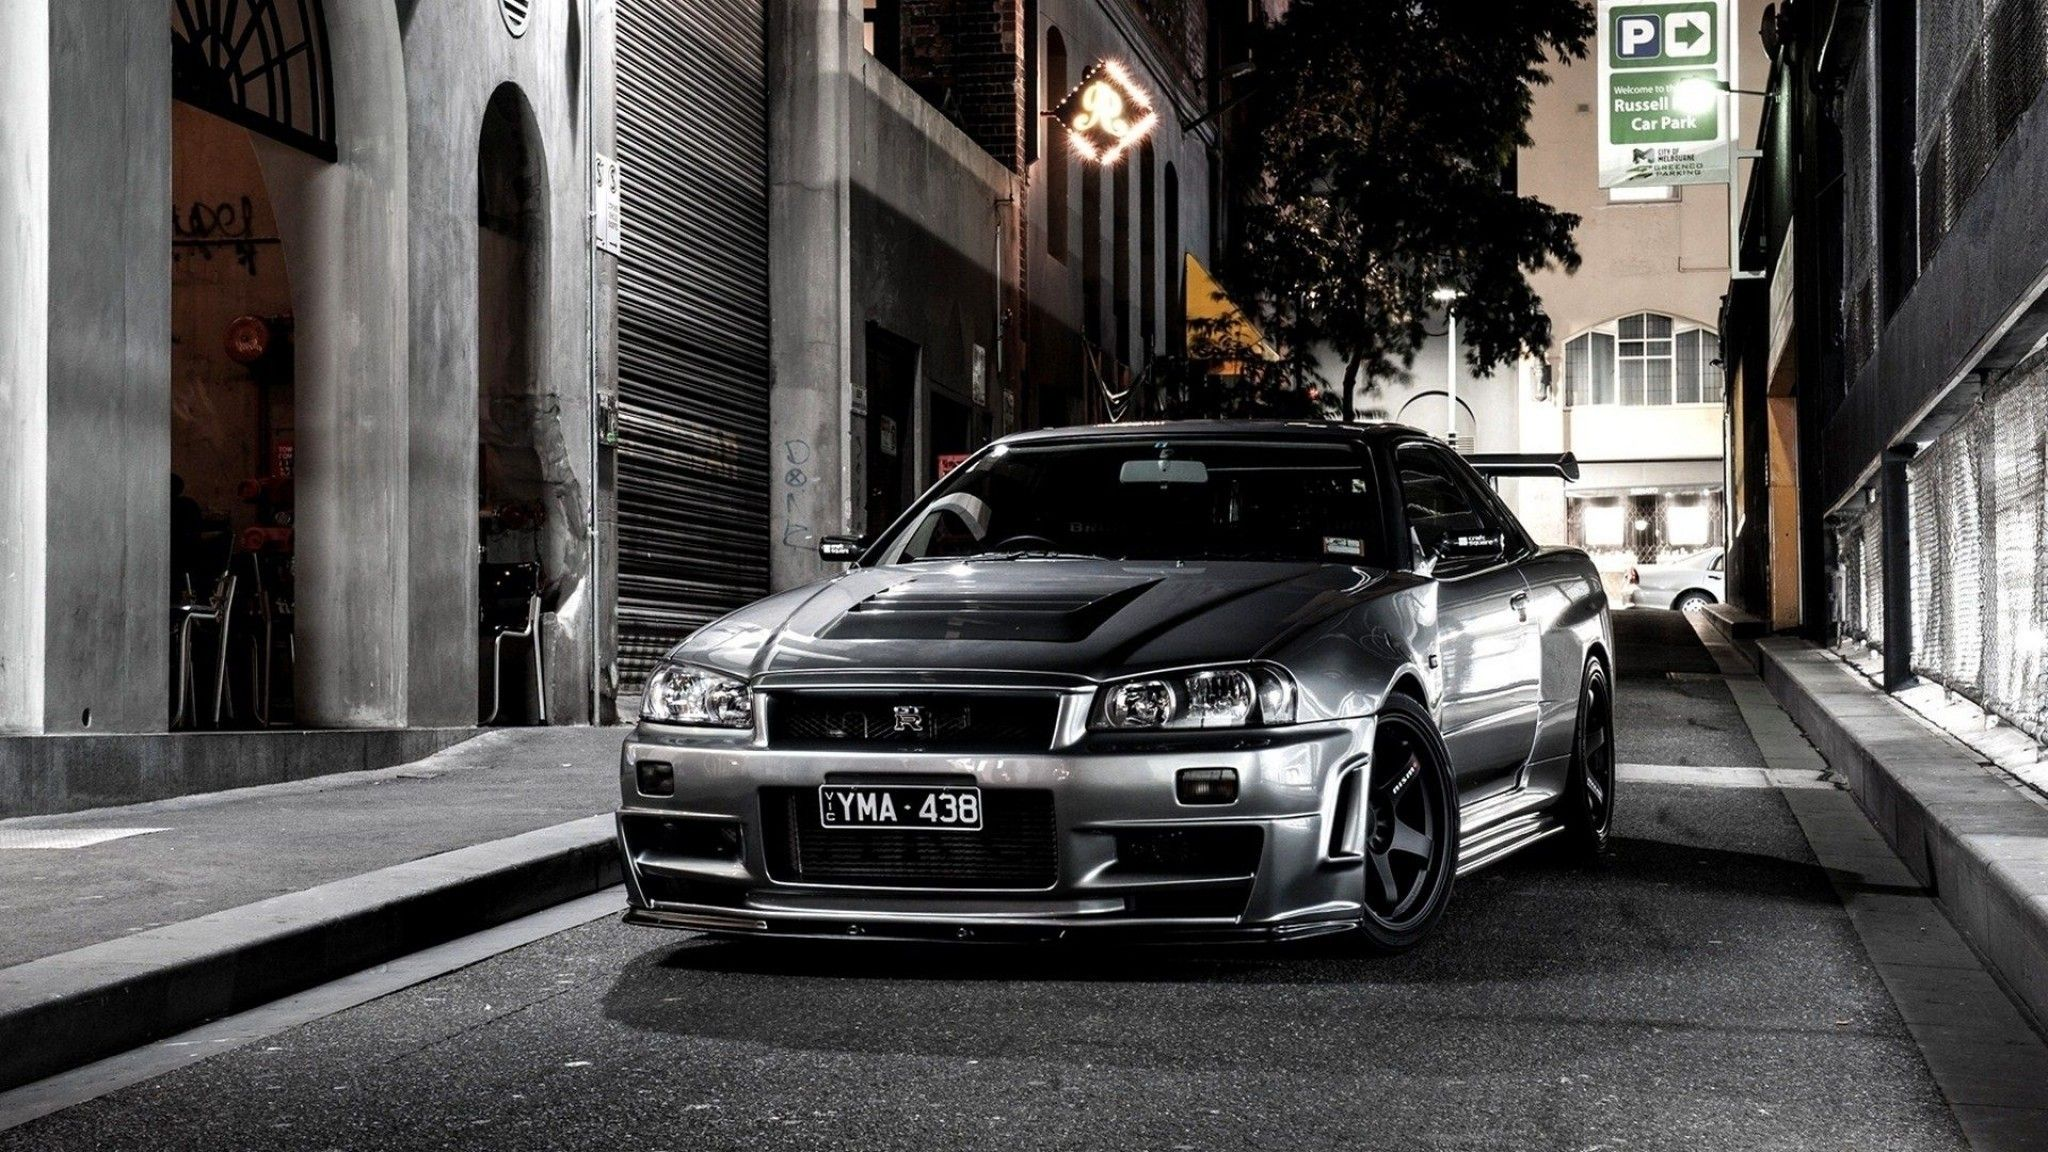 Nissan Skyline Gtr R34 Wallpaper 2048x1152 Download Skyline Gtr